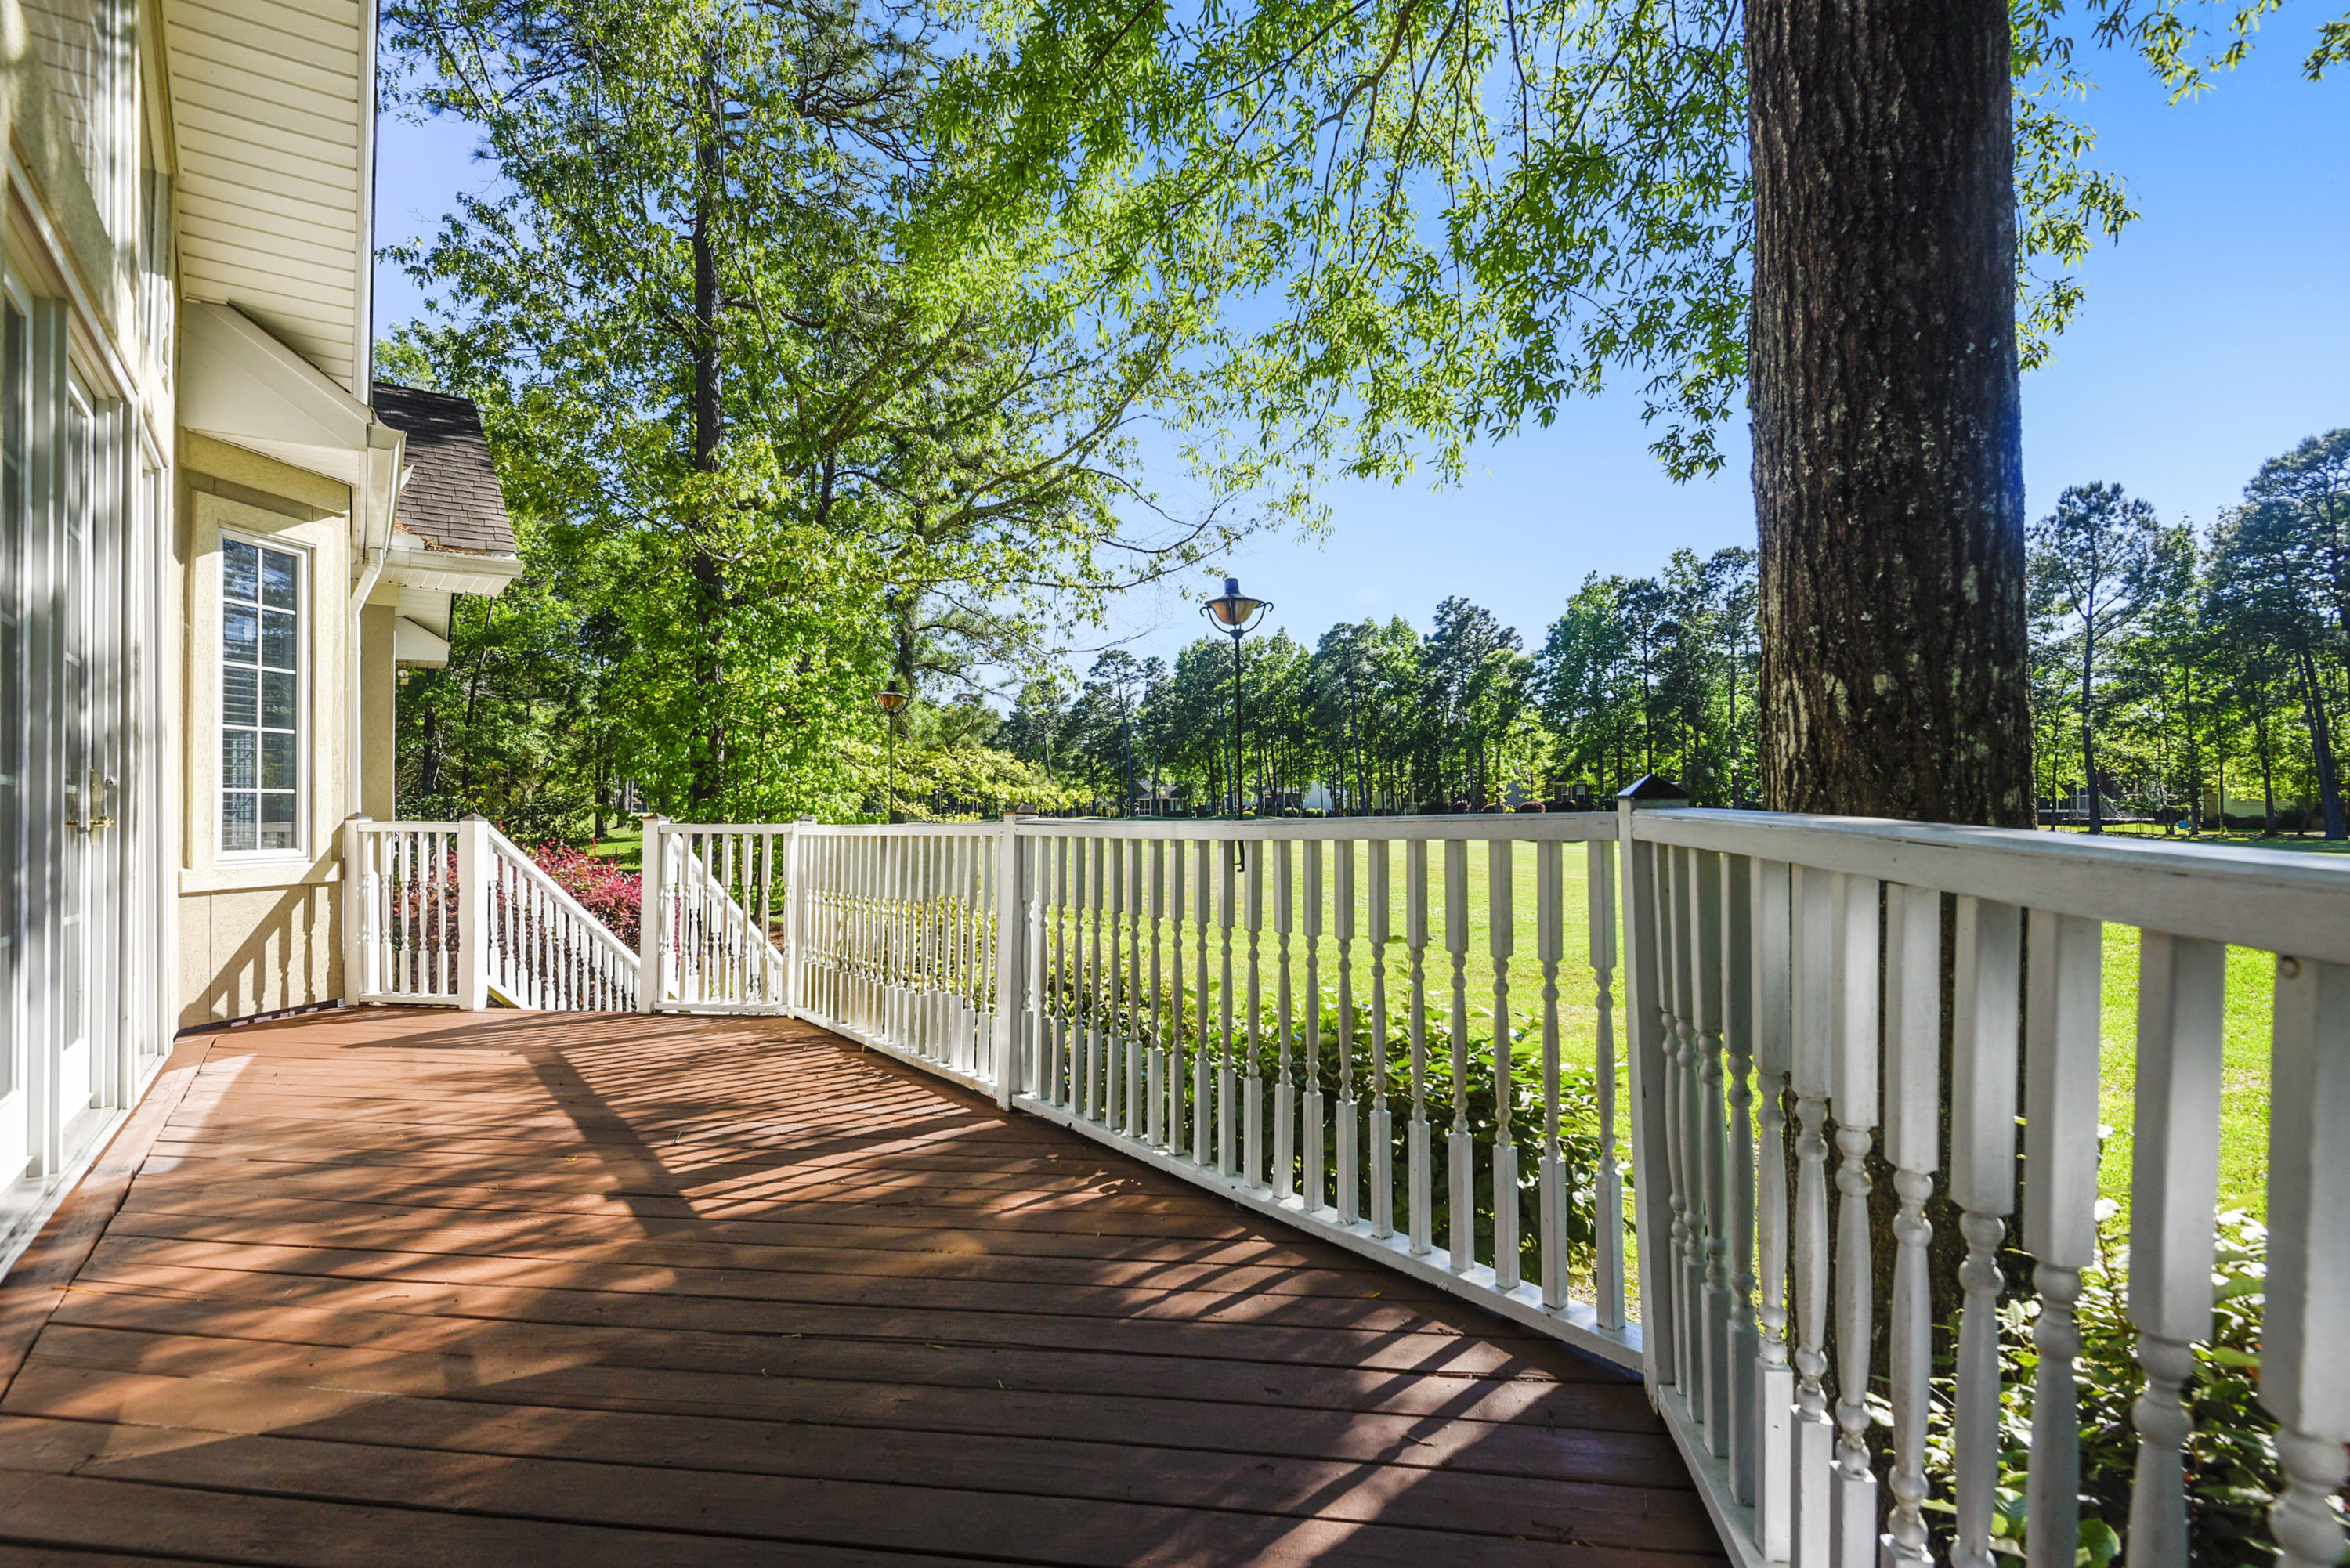 Coosaw Creek Country Club Homes For Sale - 8855 Fairway Woods, North Charleston, SC - 22